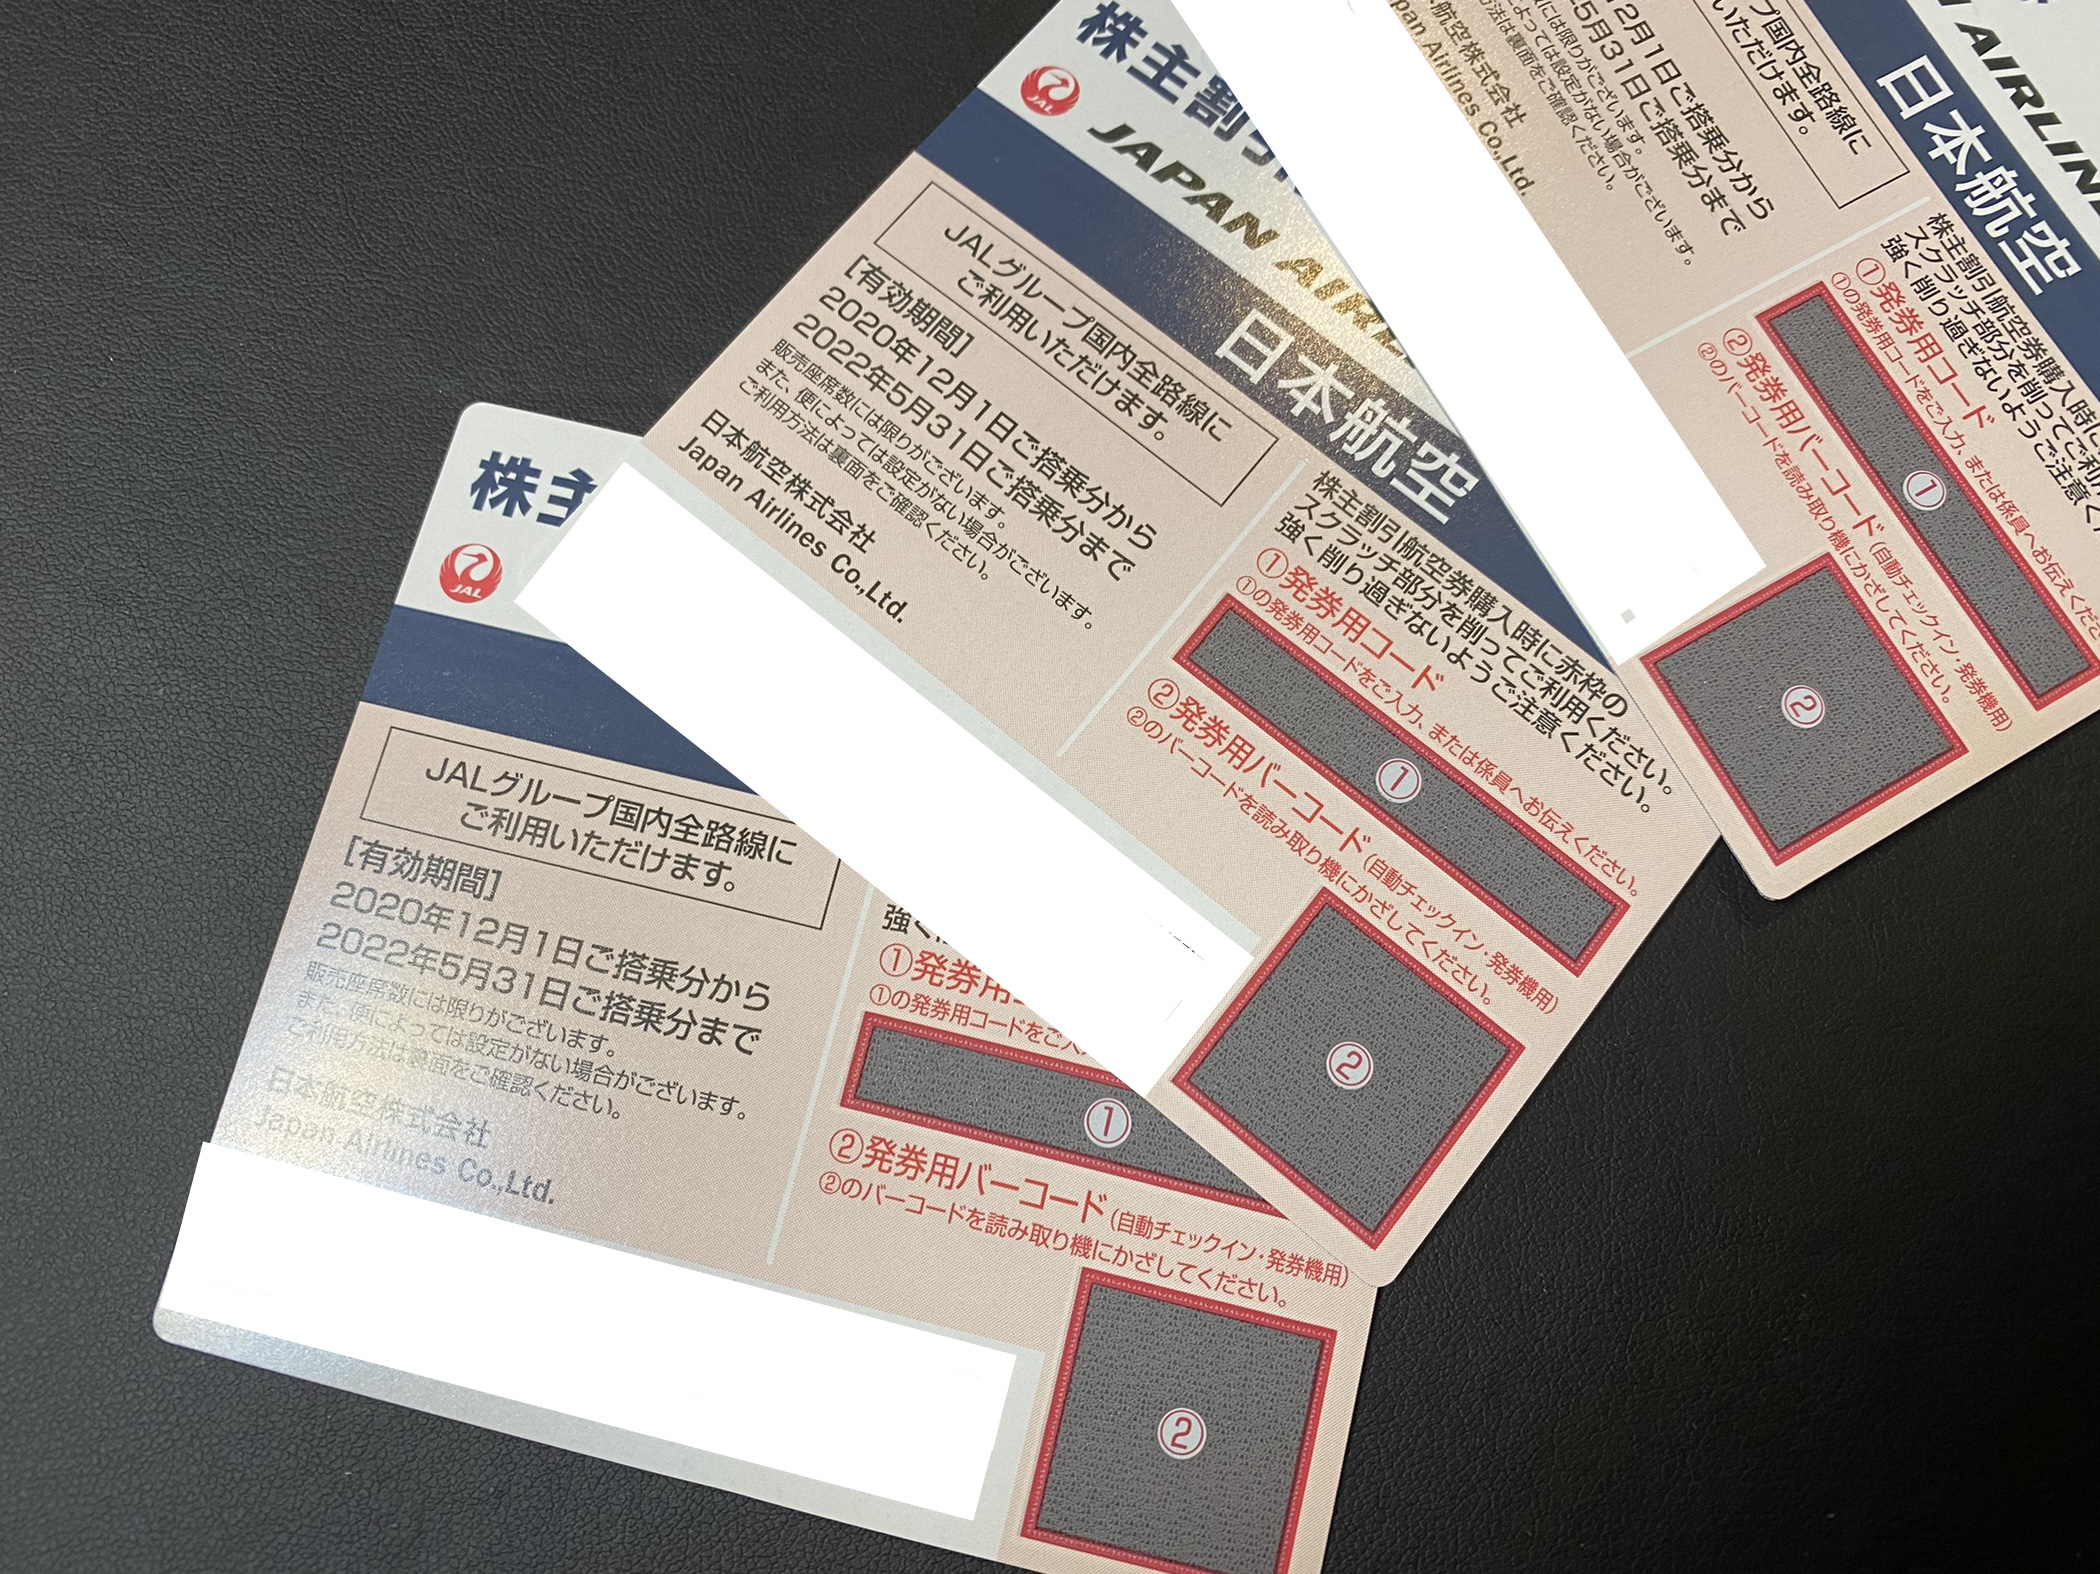 JAL株主優待券(日本航空)をお買取!価格の相場は?